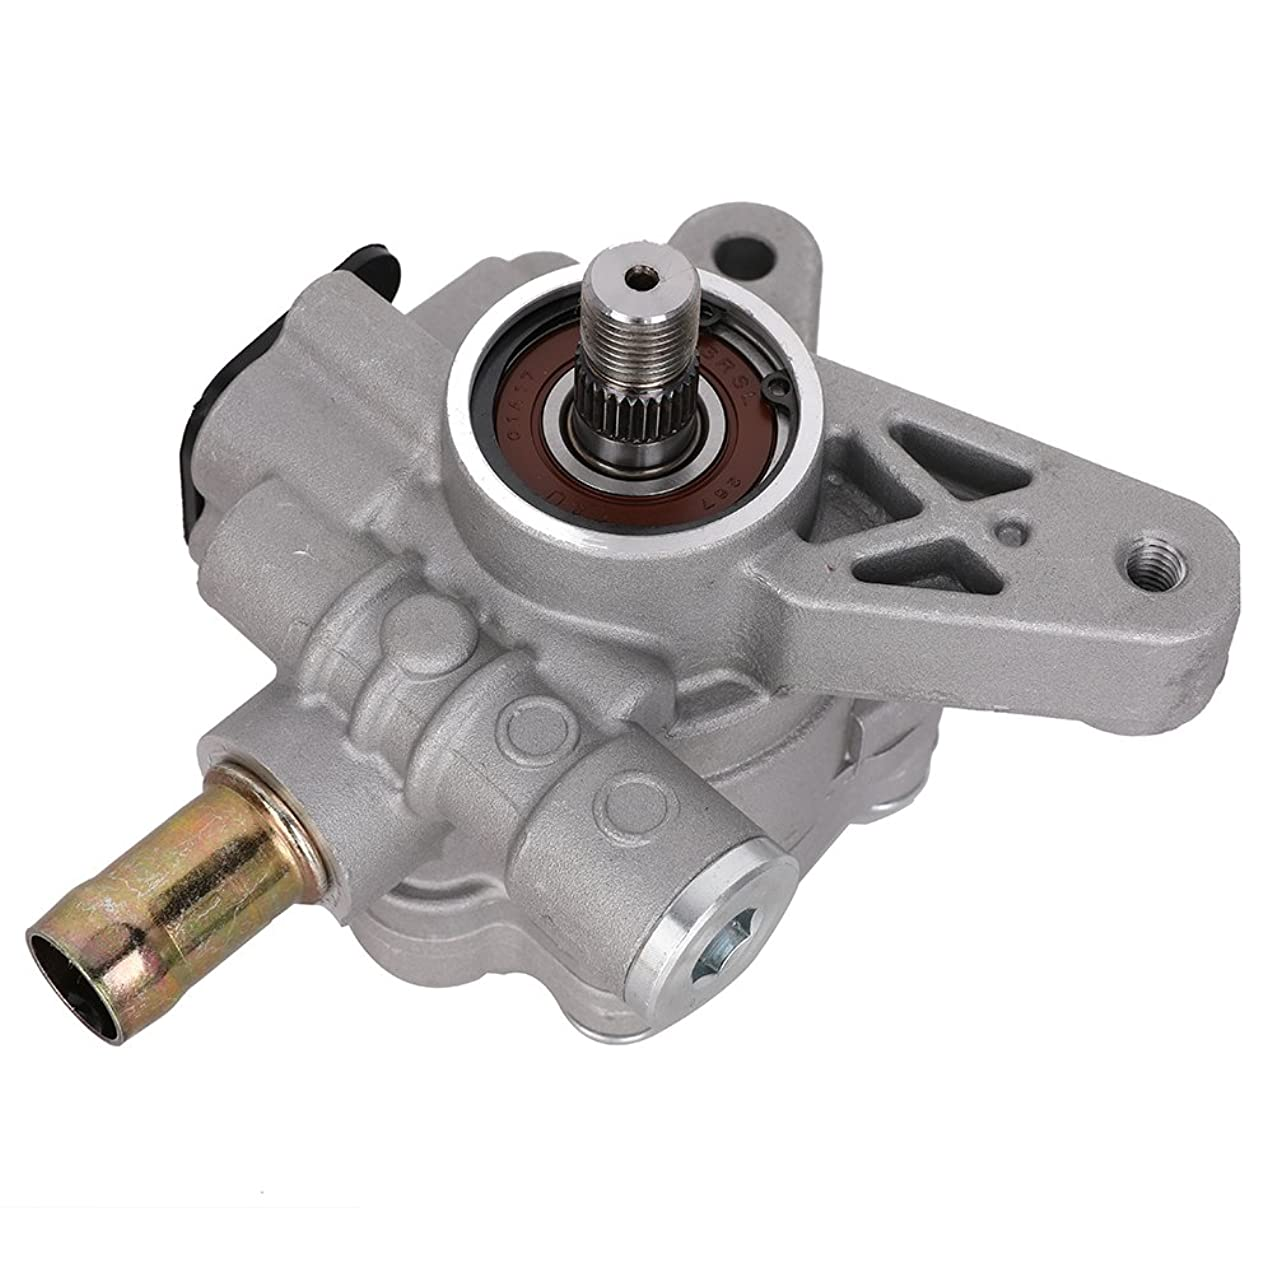 21-5919 Power Steering Pump for 1998 1999 2000 2001 2002 Honda Accord 2.3L Replace # 96-5919 56110-PAA-A01 (21-5919)